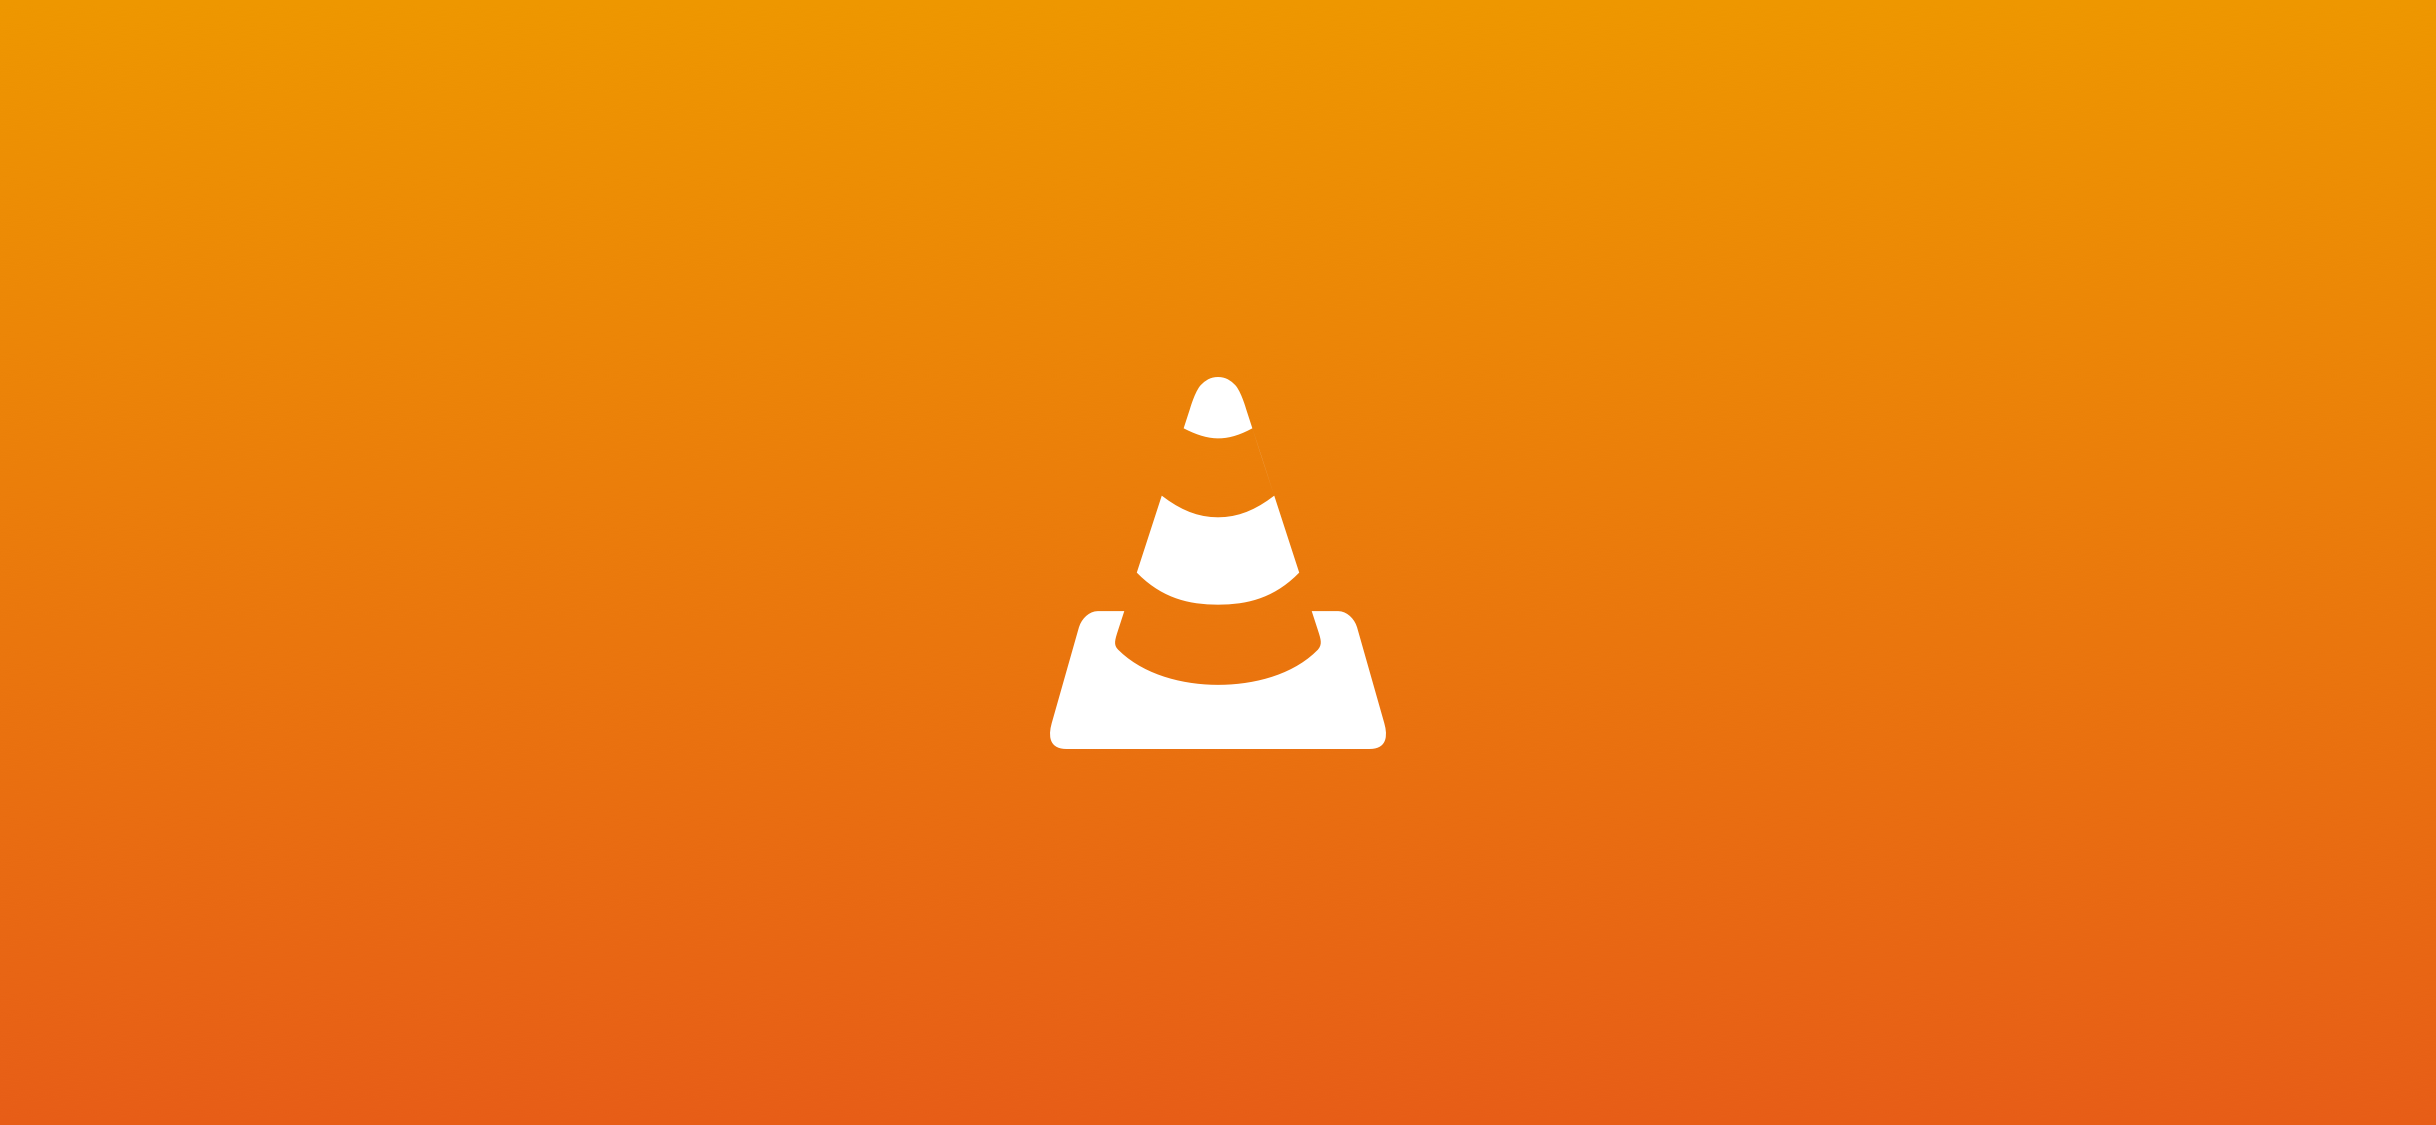 vlc-ios/Images.xcassets/LaunchImage.launchimage/iphonex-landscape.png